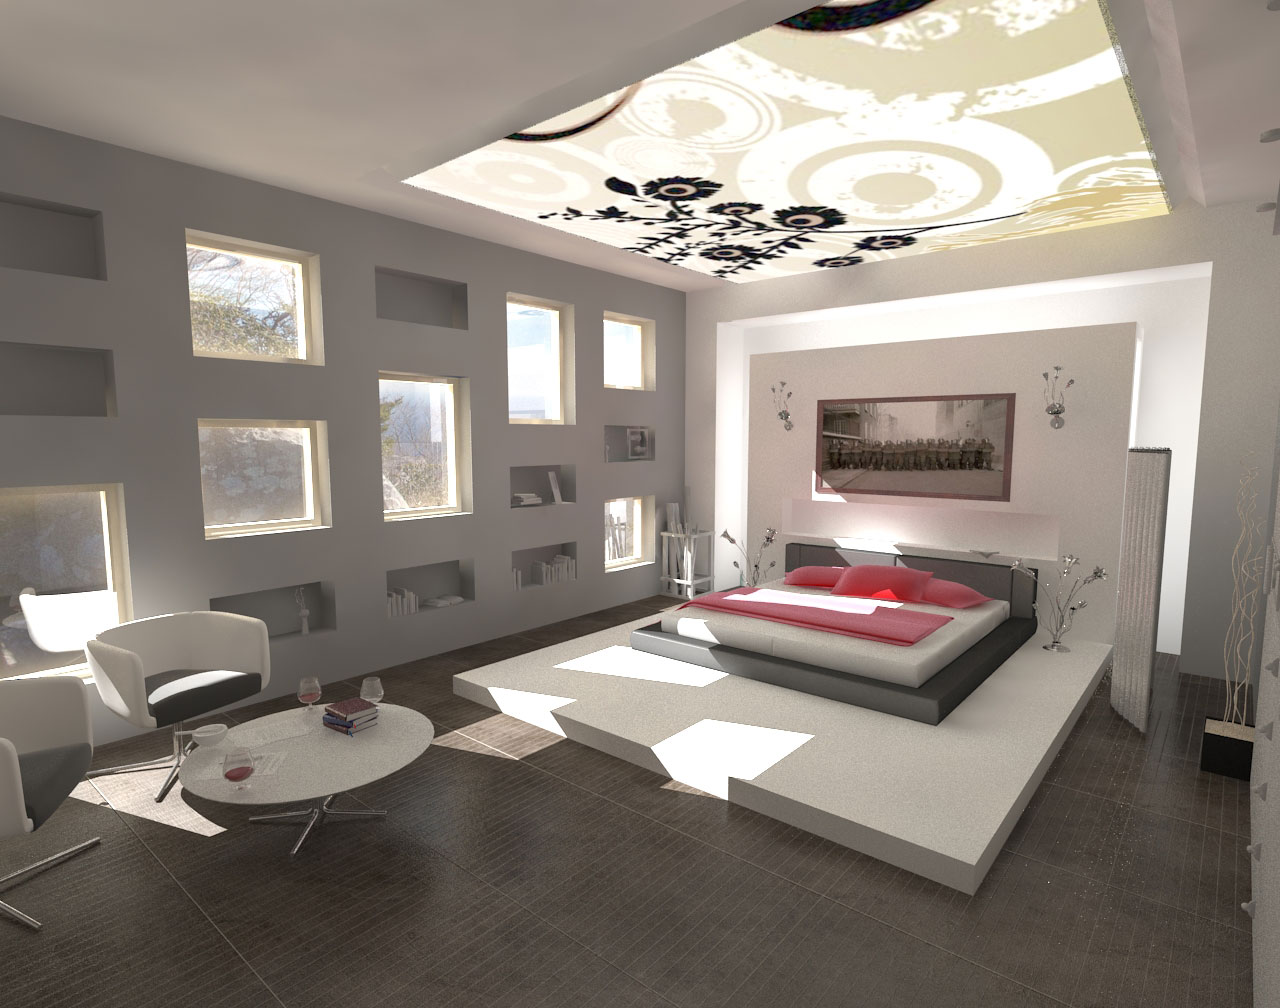 Decorations minimalist design modern bedroom interior for Design interior modern